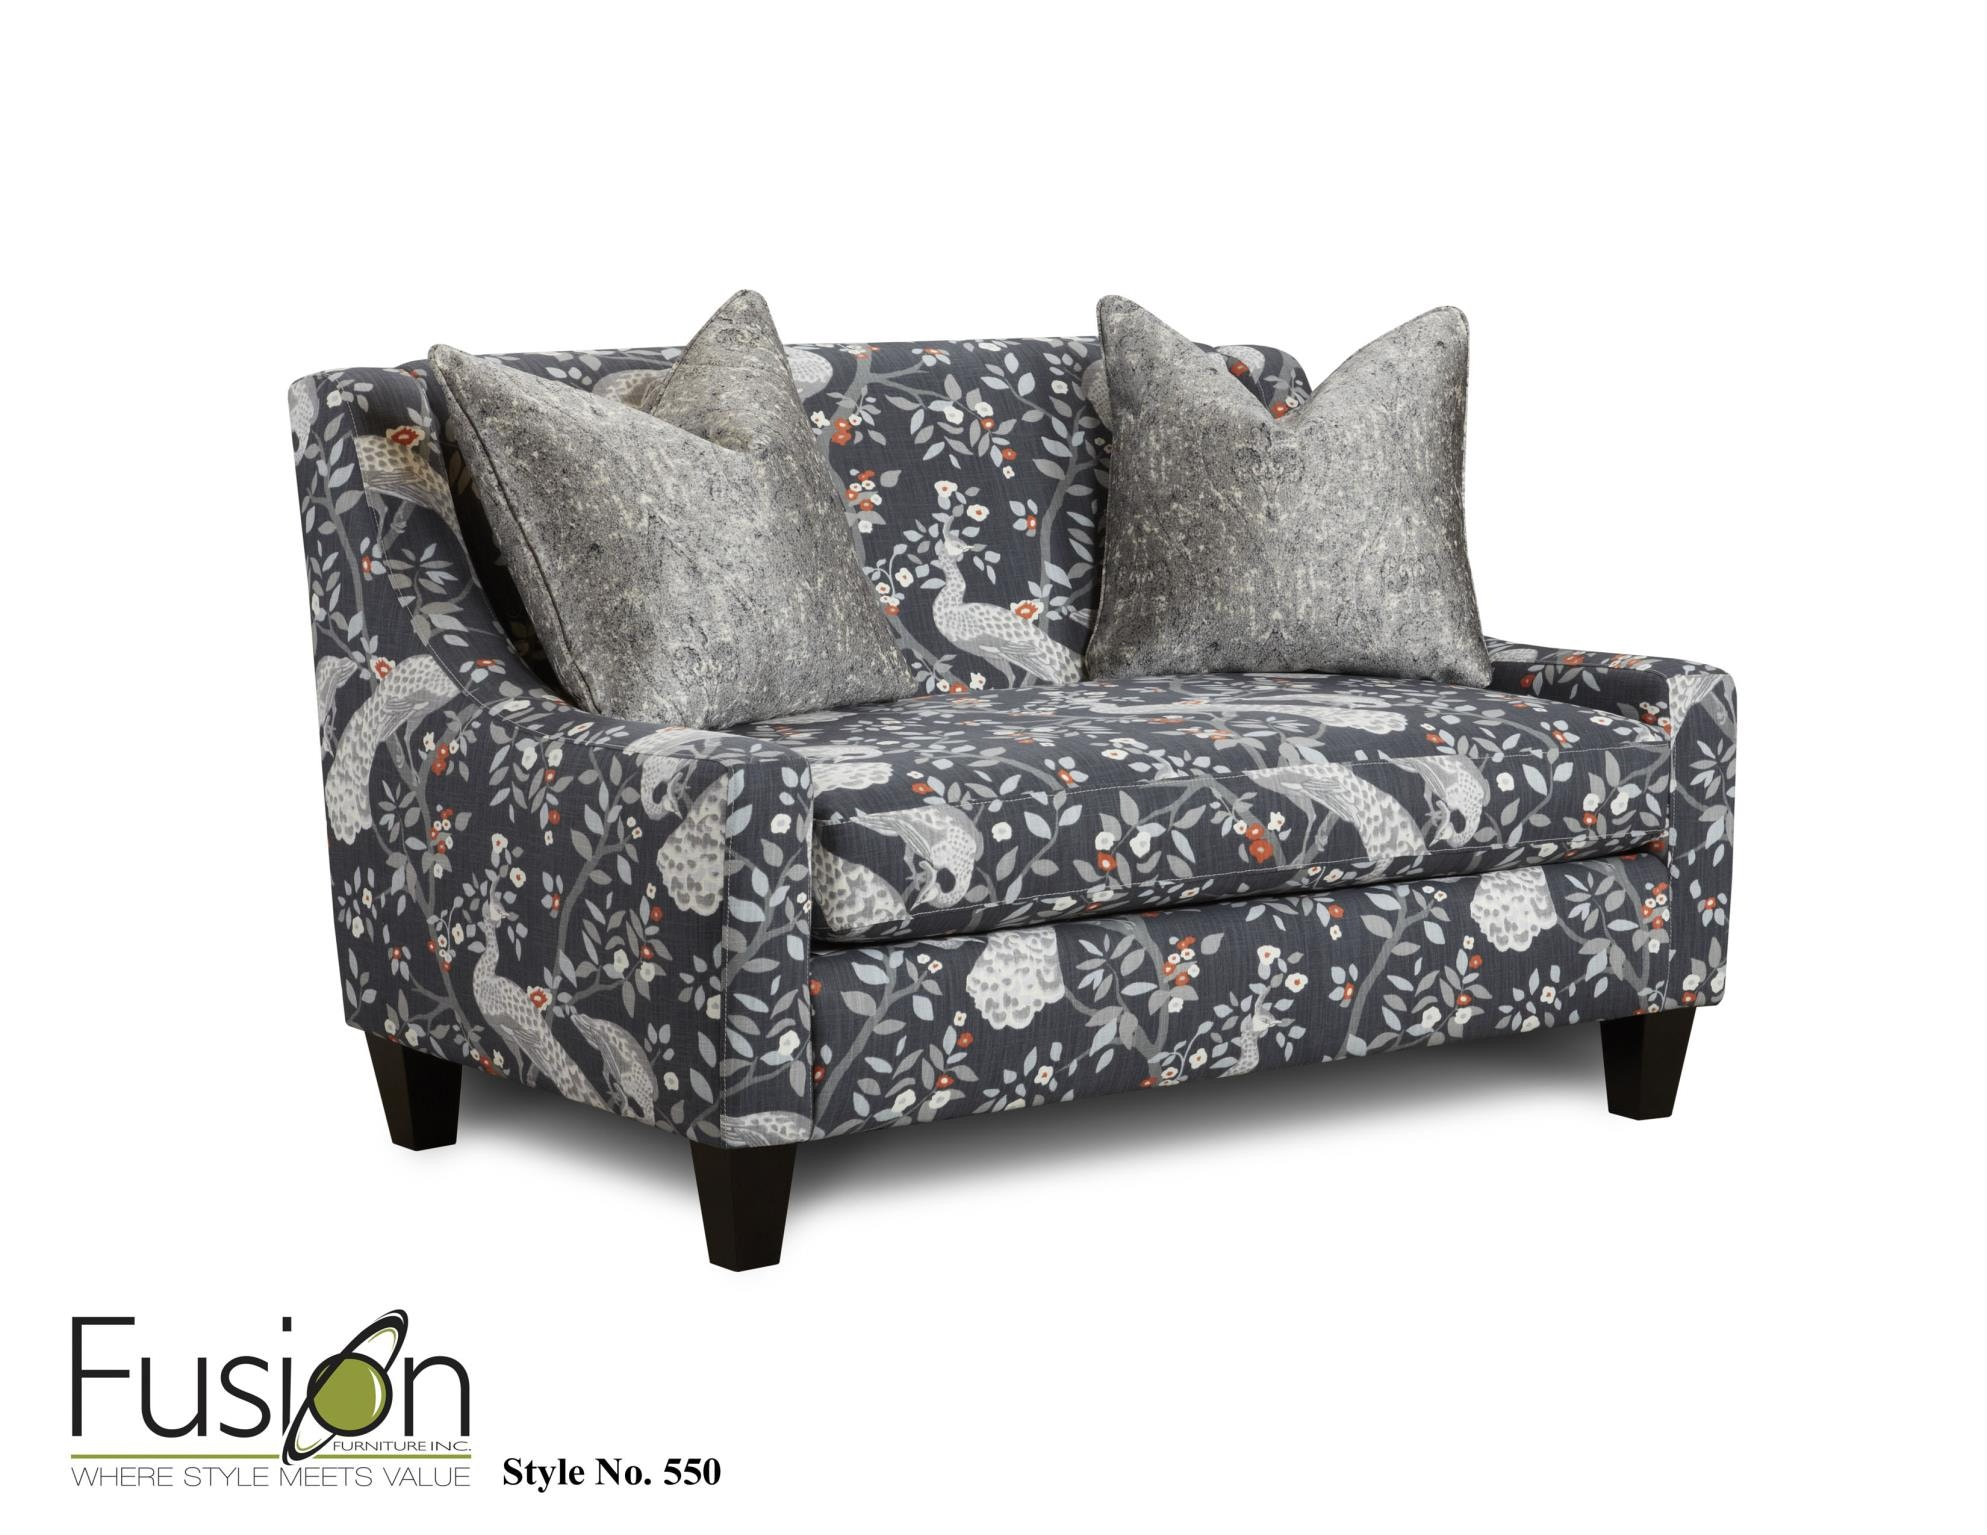 Fusion Living Room Settee 550PLUME REDUX STORM At B.F. Myers Furniture